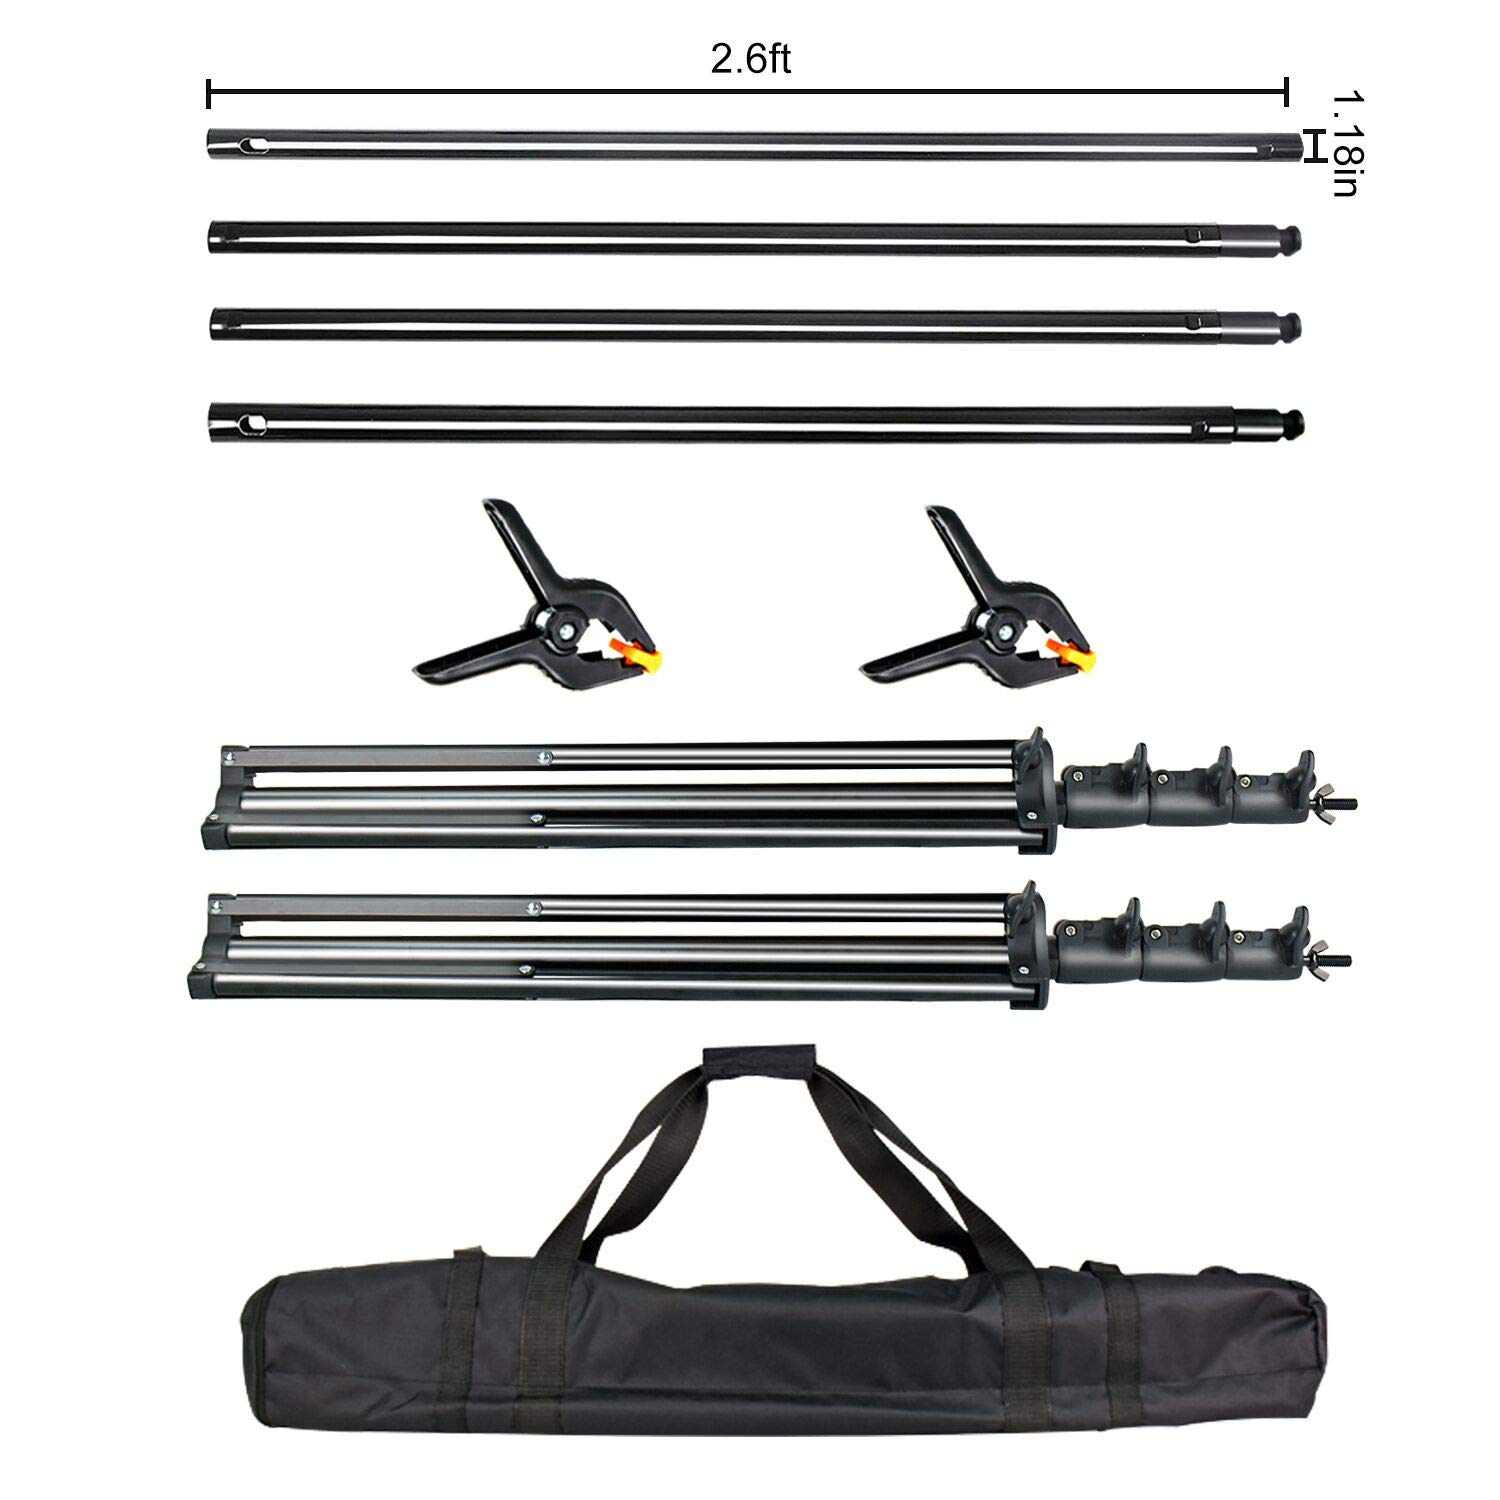 FUDESY Photo Video Studio 10 x 10Ft Heavy Duty Adjustable Backdrop Stand,Background Support System for Photography with Carry Bag,Two Pieces Spring Clamps